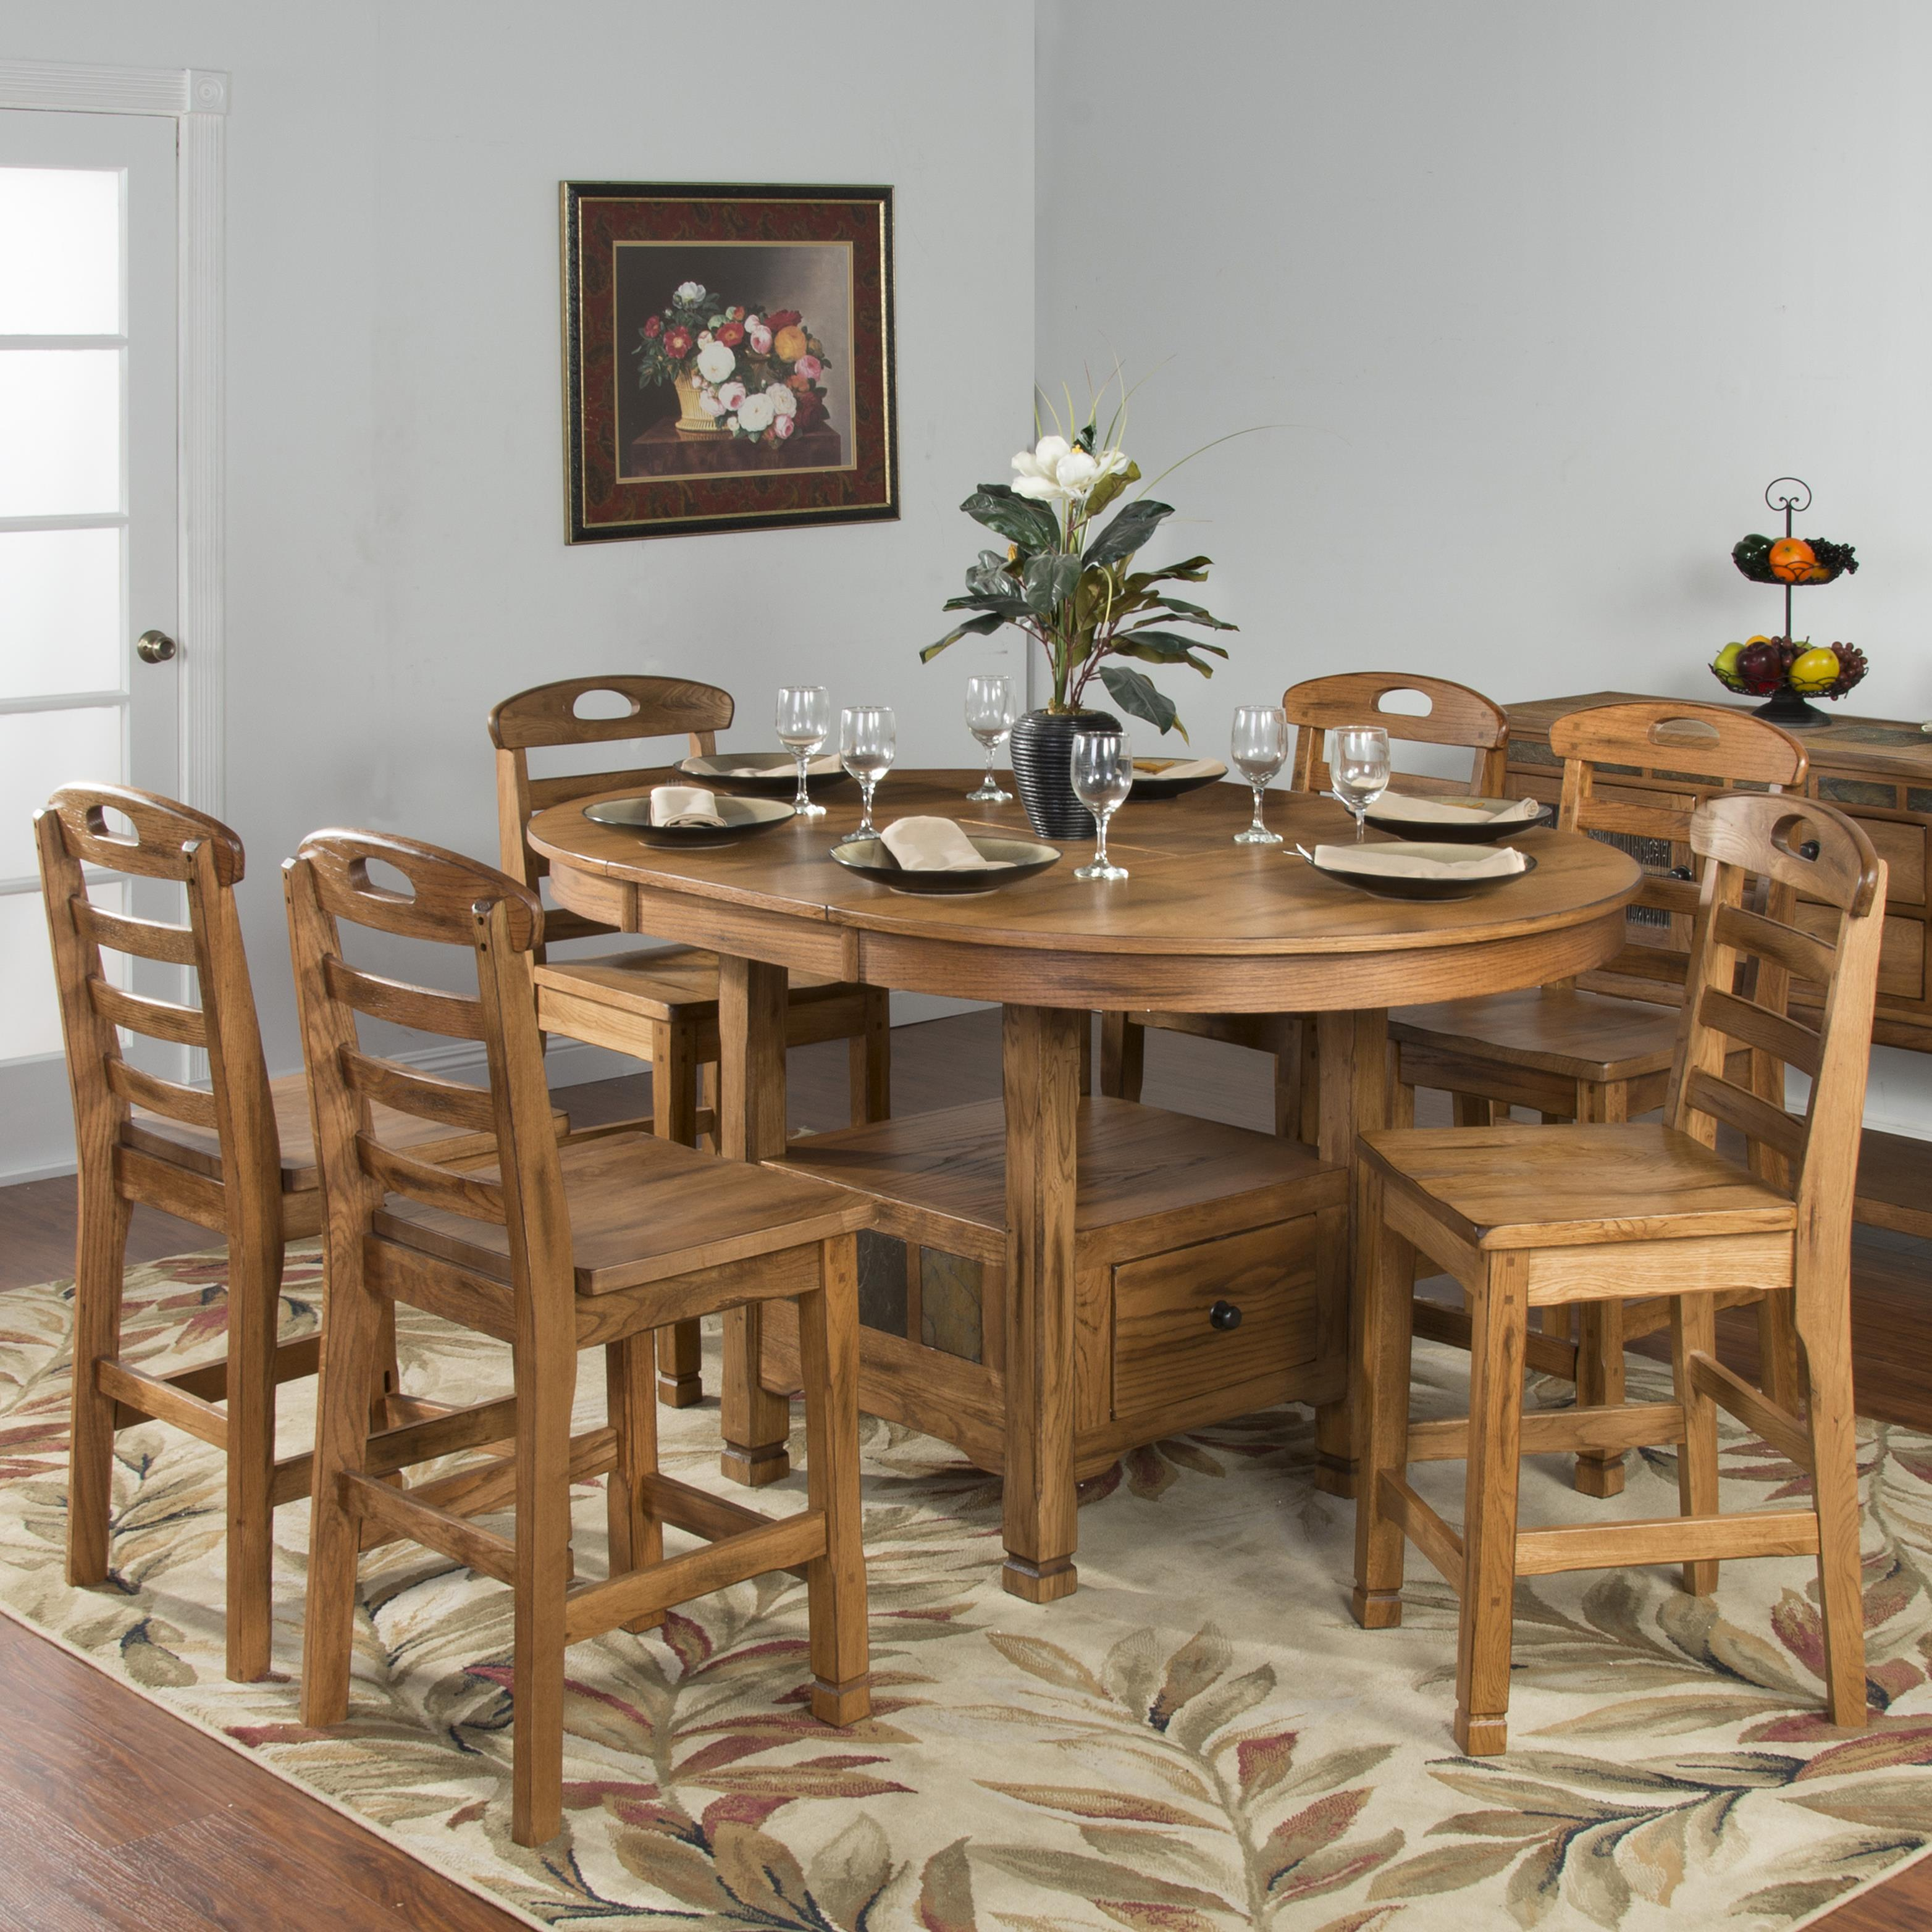 Sedona rustic oak 7 piece dining set by sunny designs for Rustic dining set